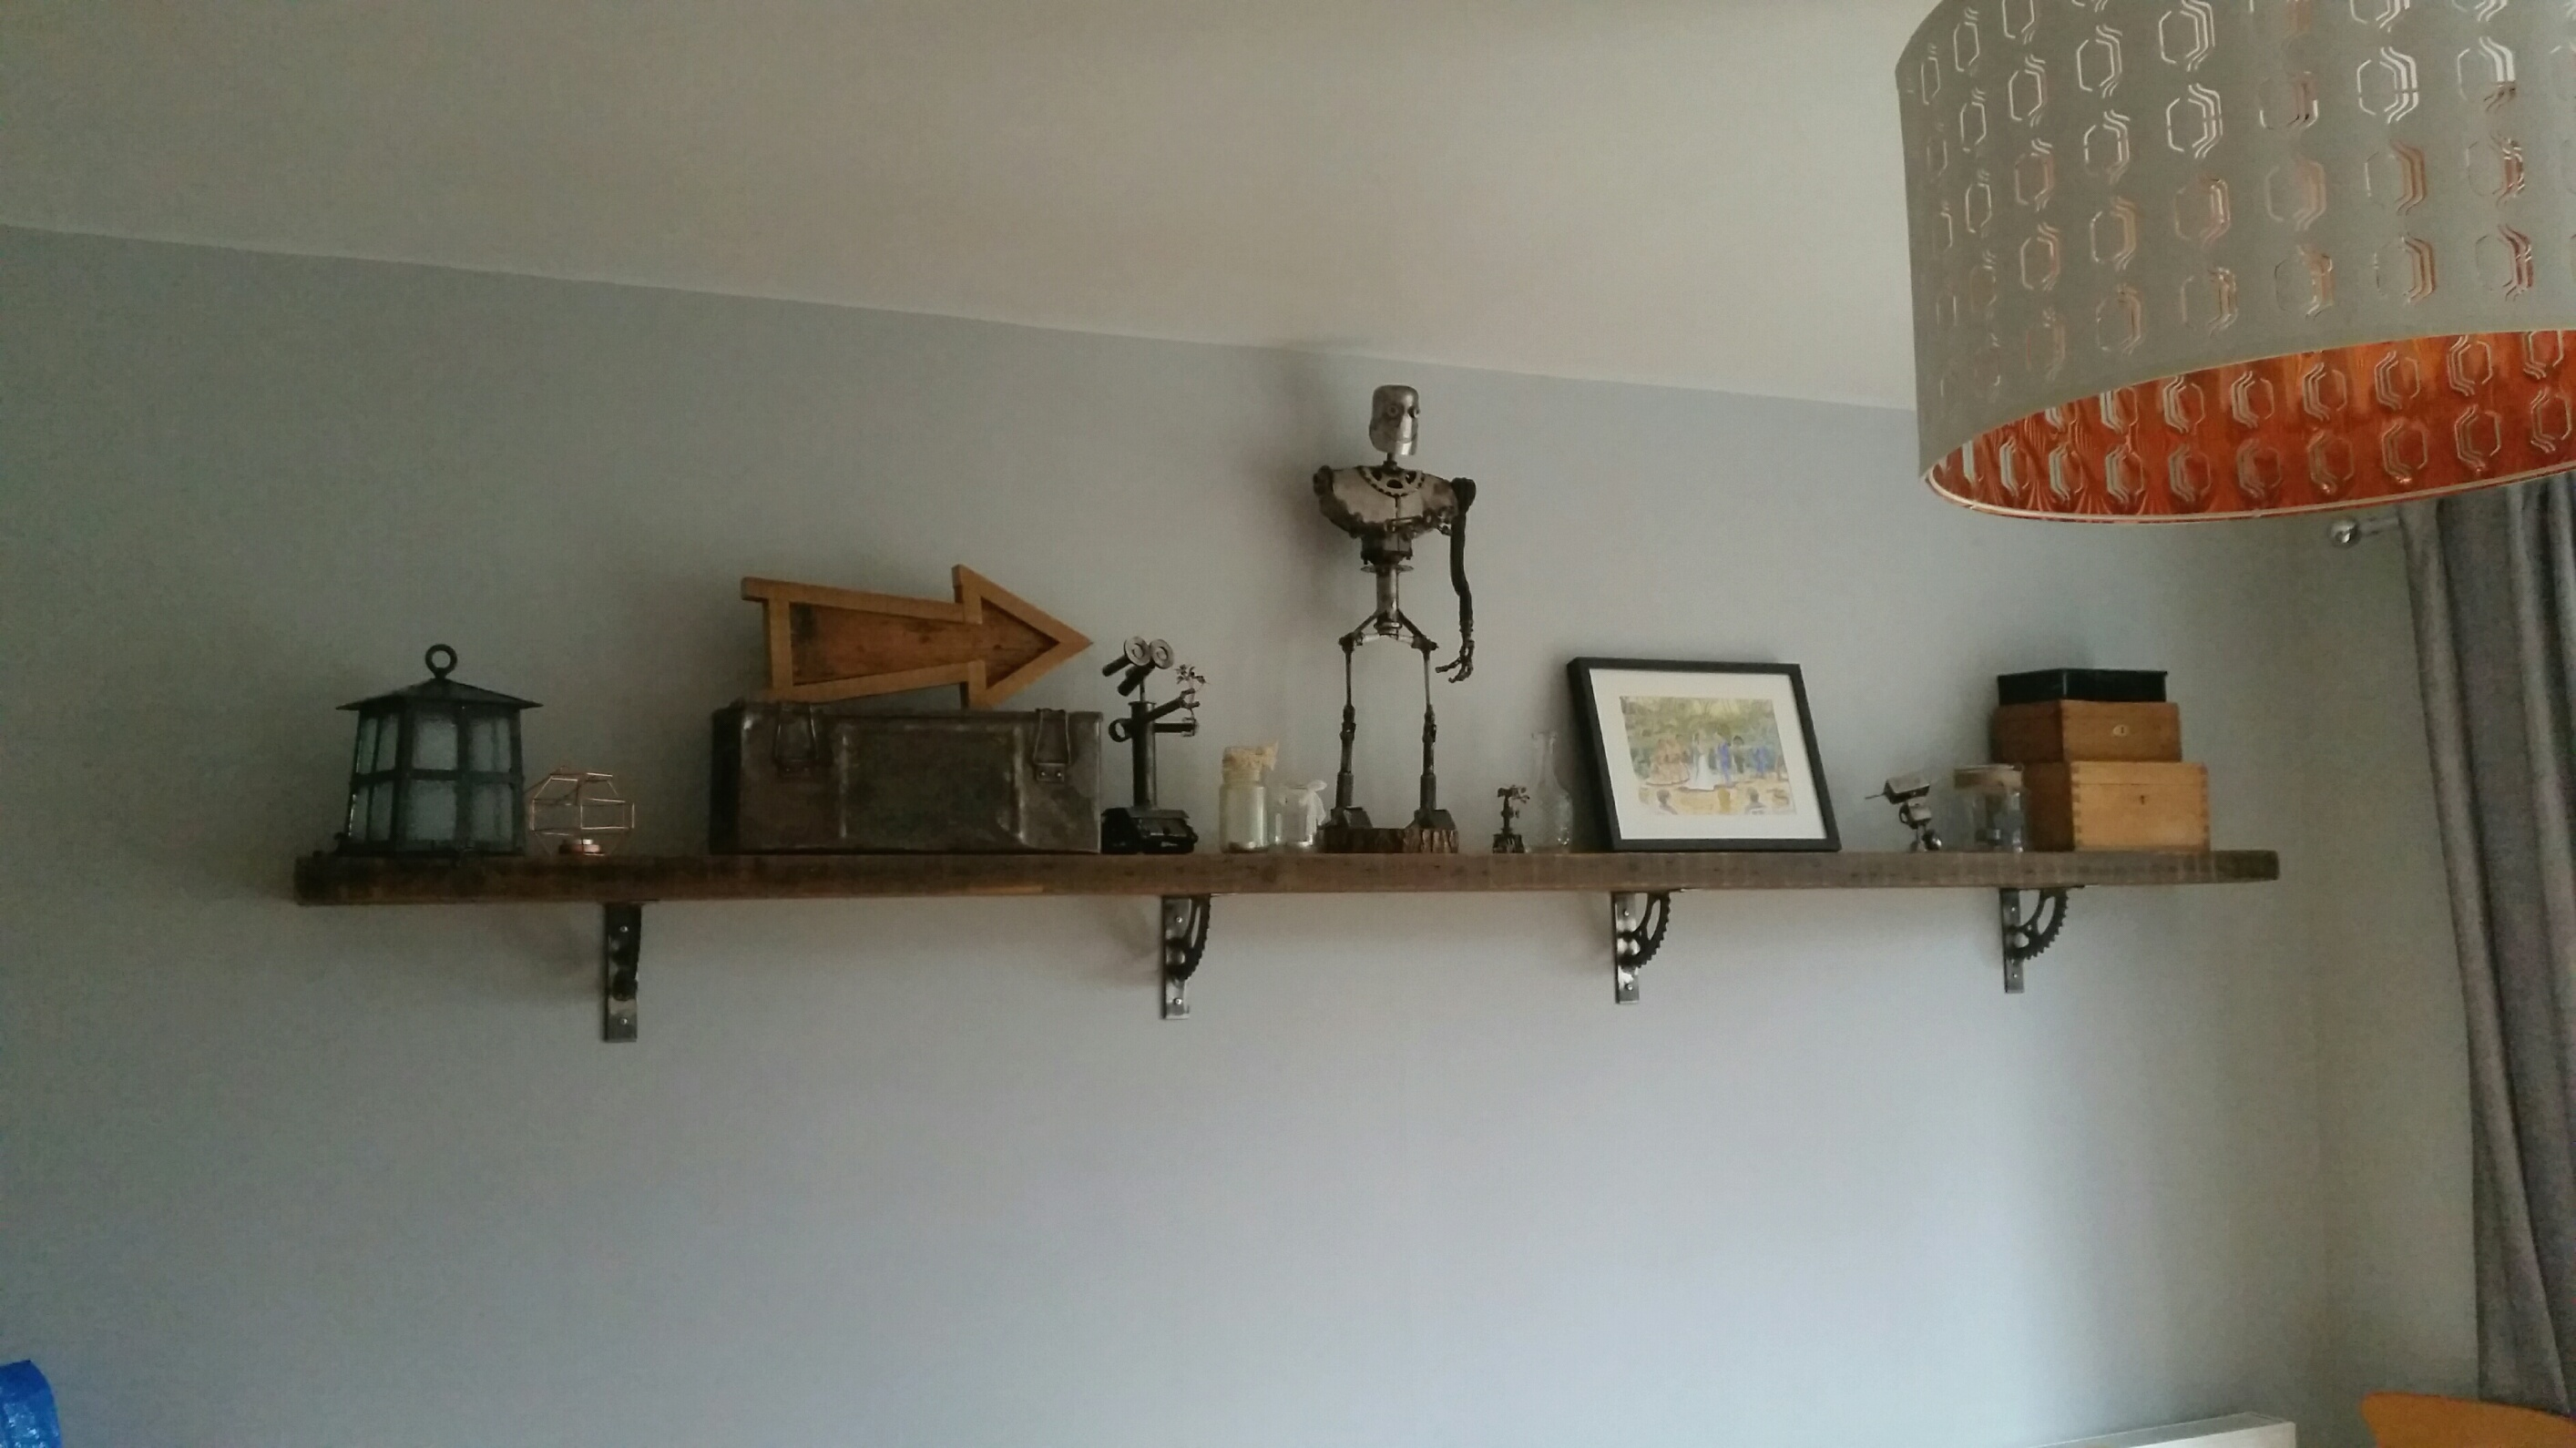 Picture of Mounting the Brackets and Shelf